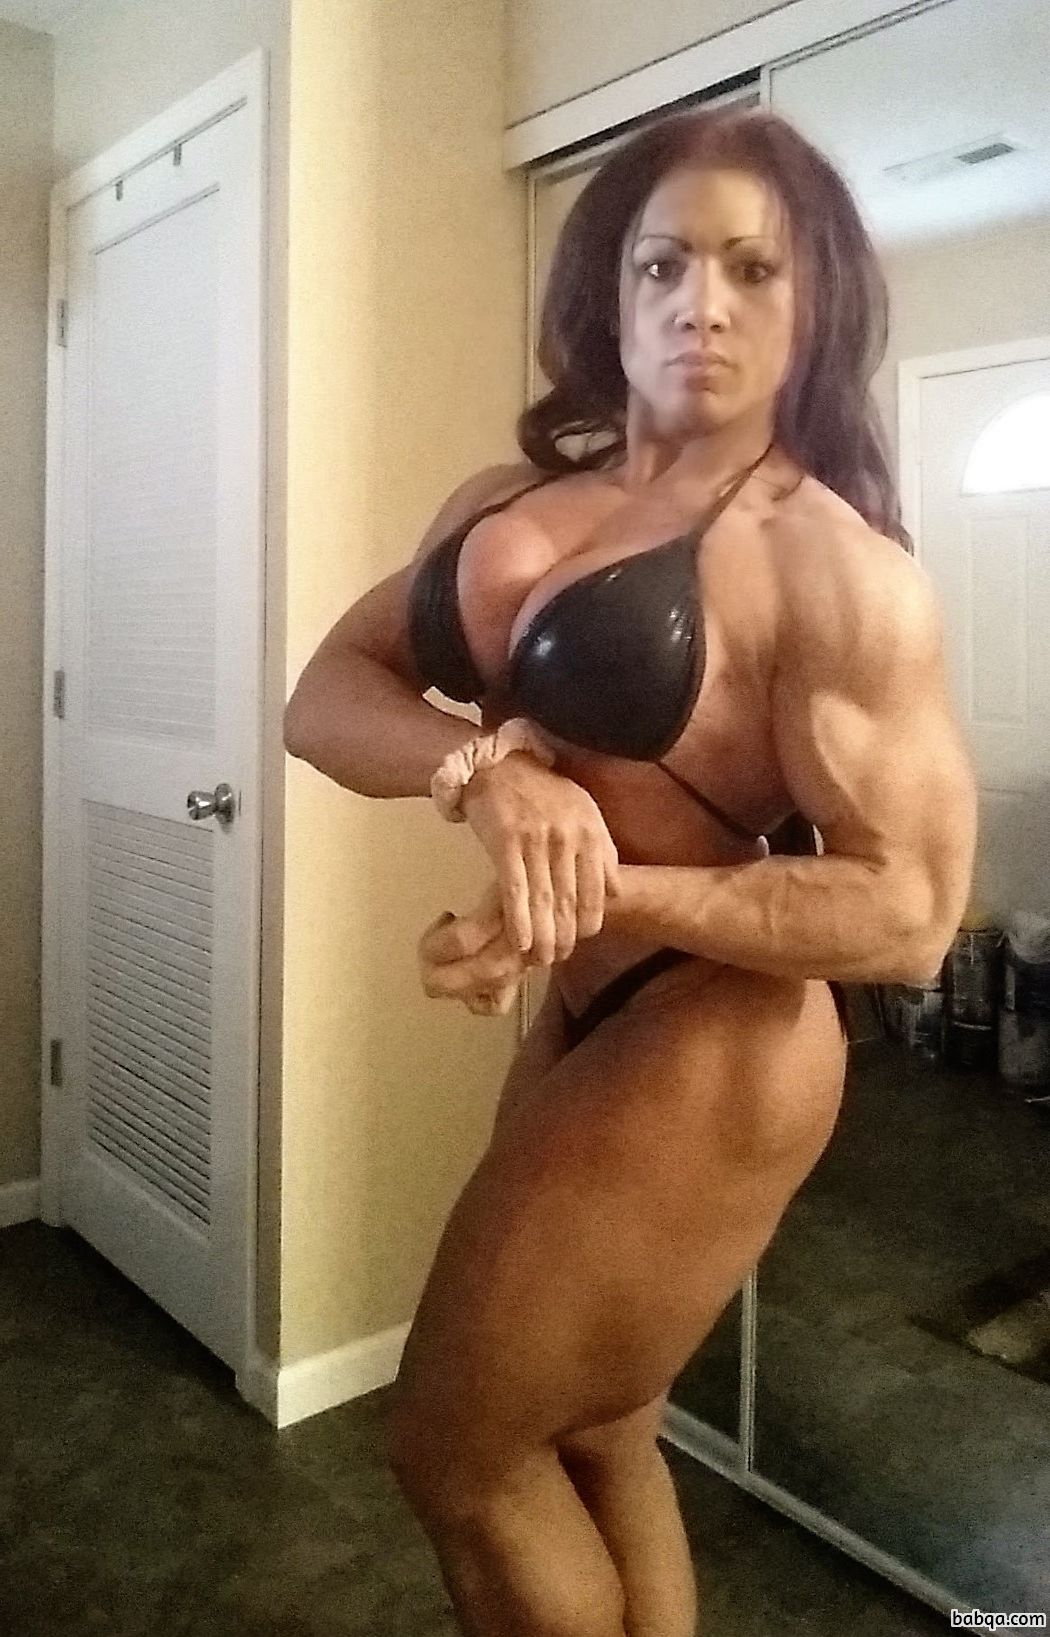 sexy woman with muscle body and toned arms photo from reddit